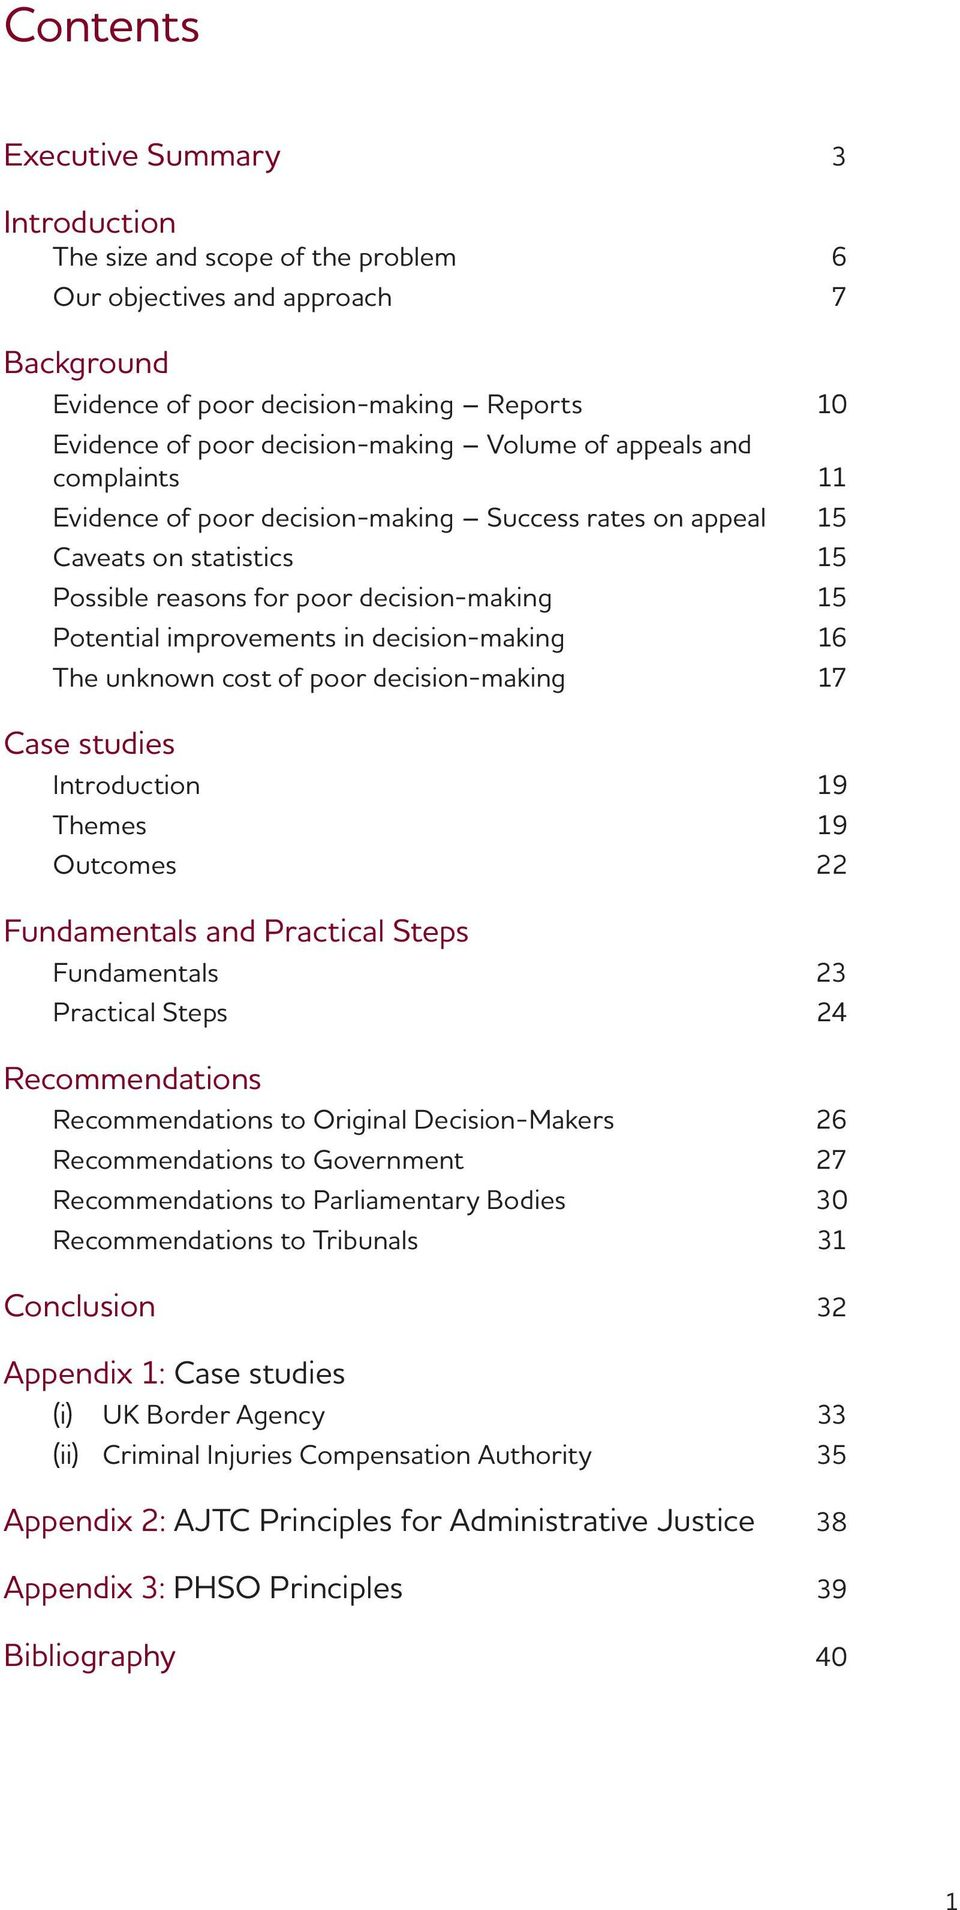 decision-making 16 The unknown cost of poor decision-making 17 Case studies Introduction 19 Themes 19 Outcomes 22 Fundamentals and Practical Steps Fundamentals 23 Practical Steps 24 Recommendations